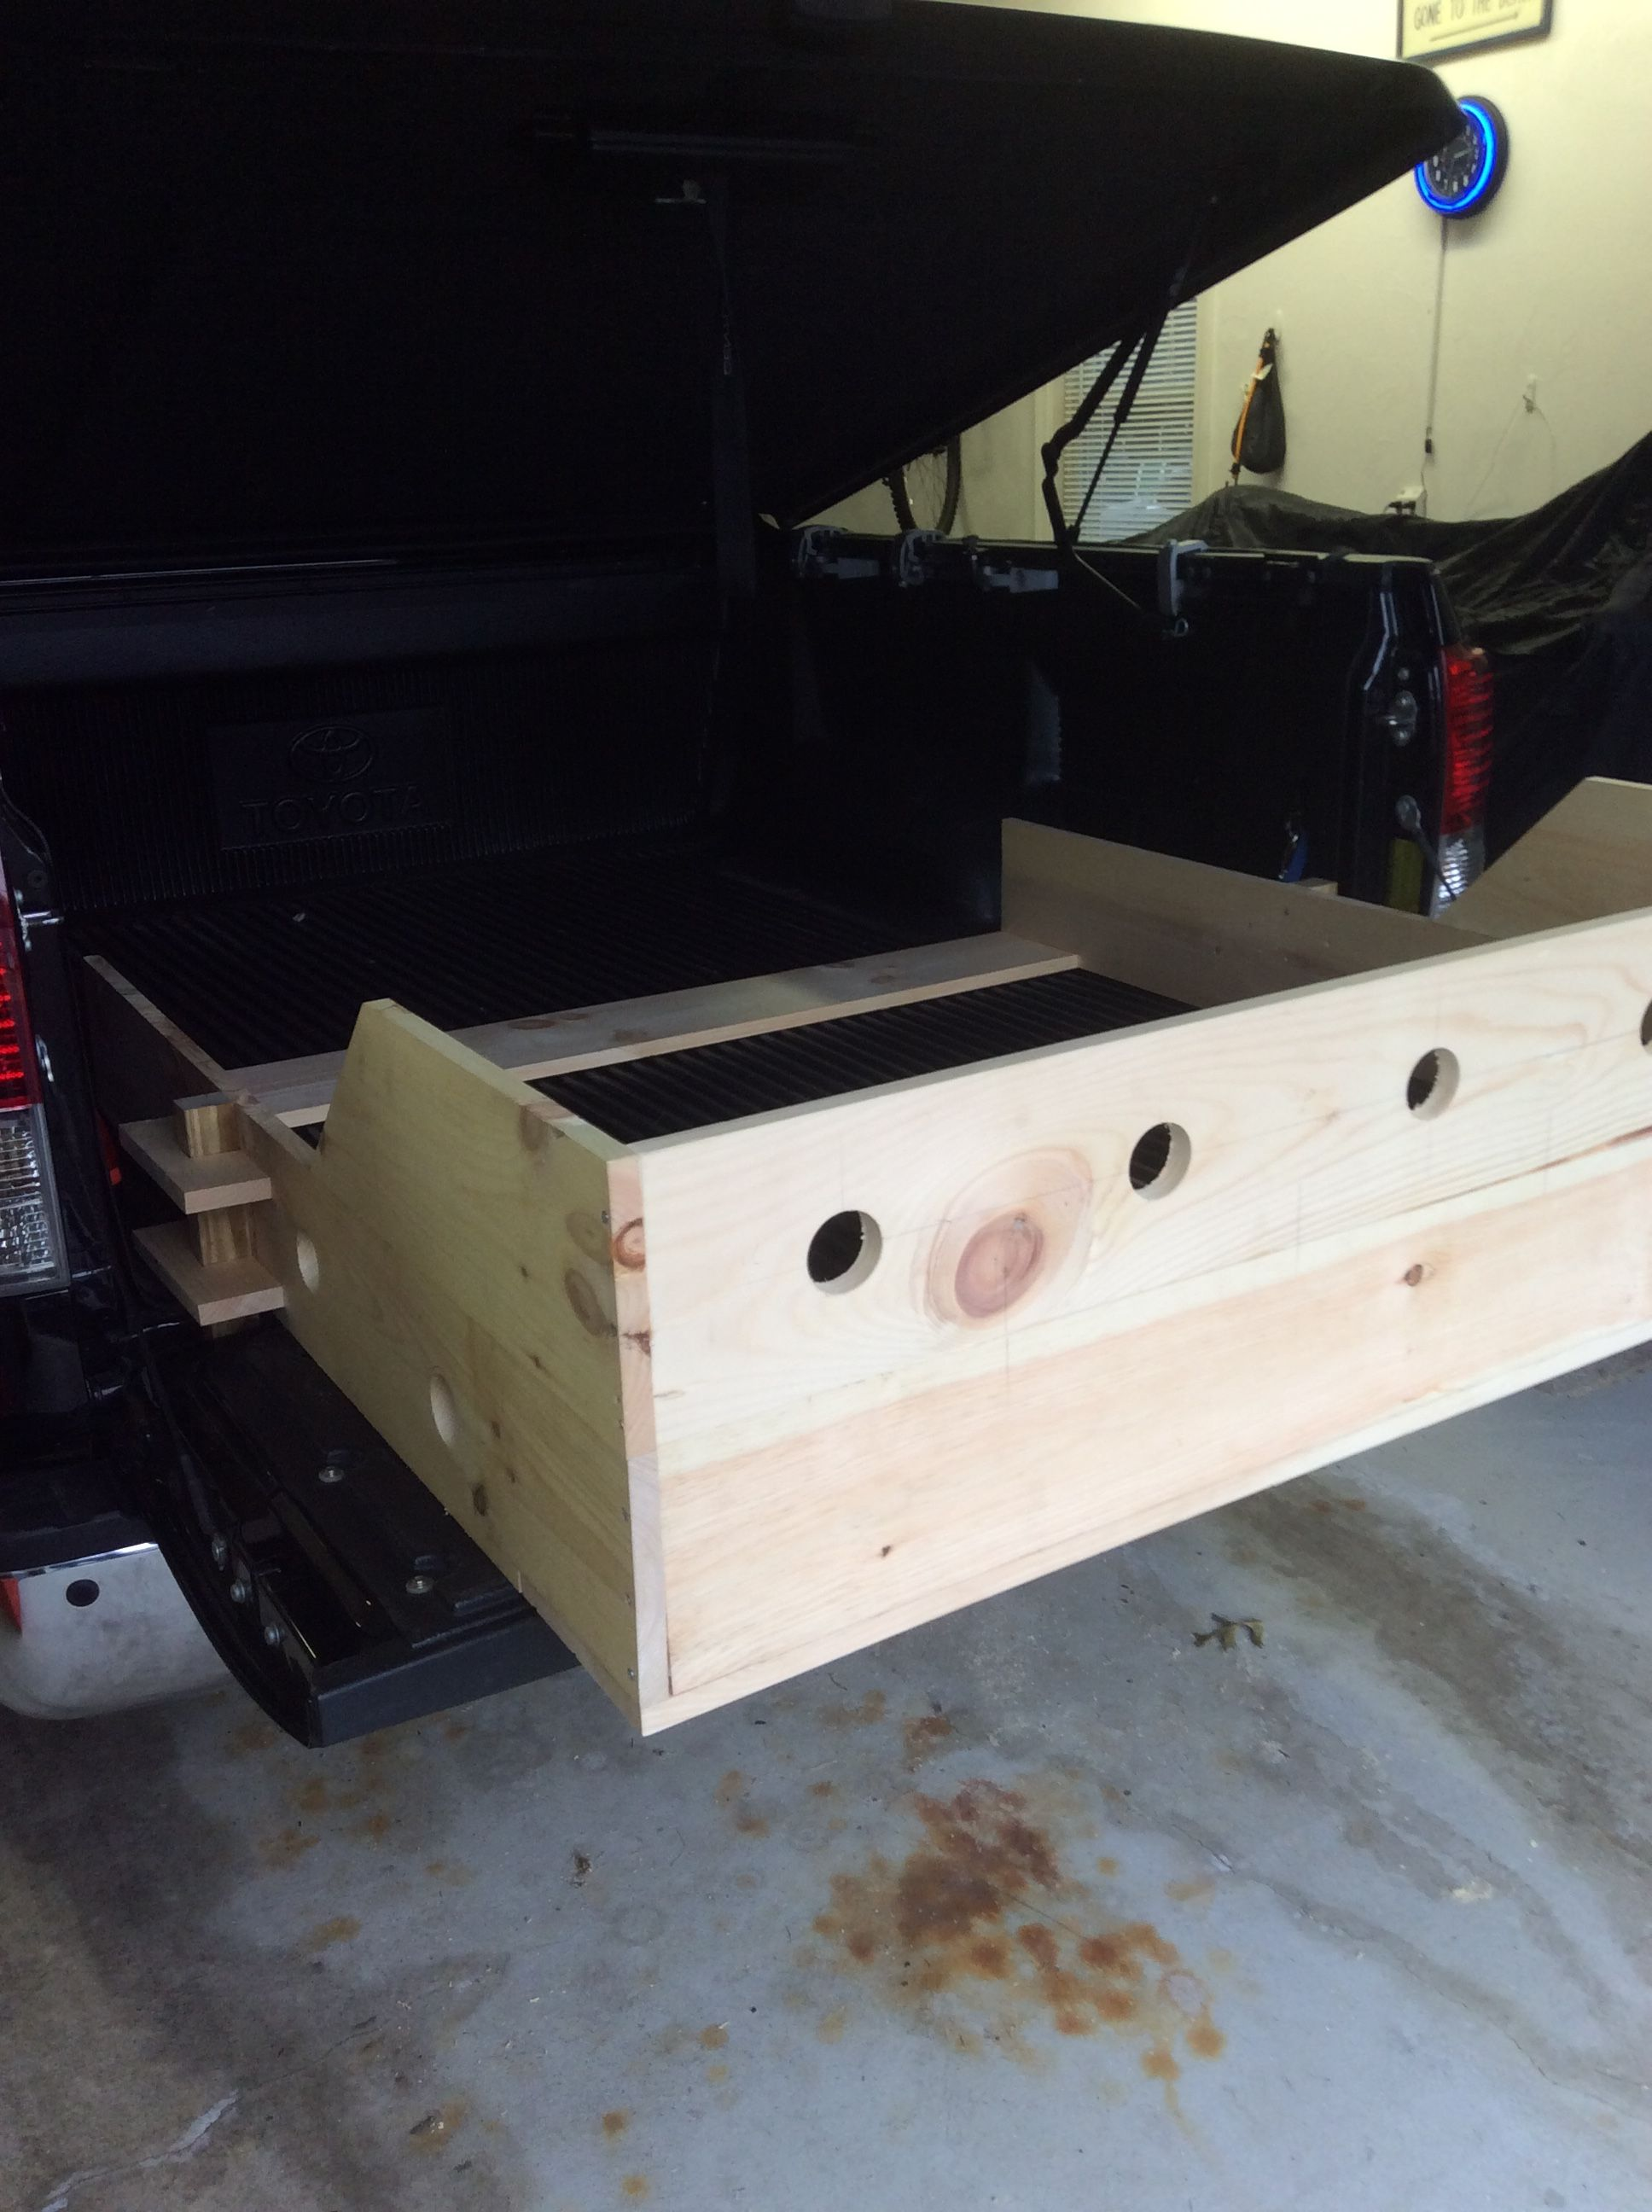 Back of bed extender, holes are for air flow while moving